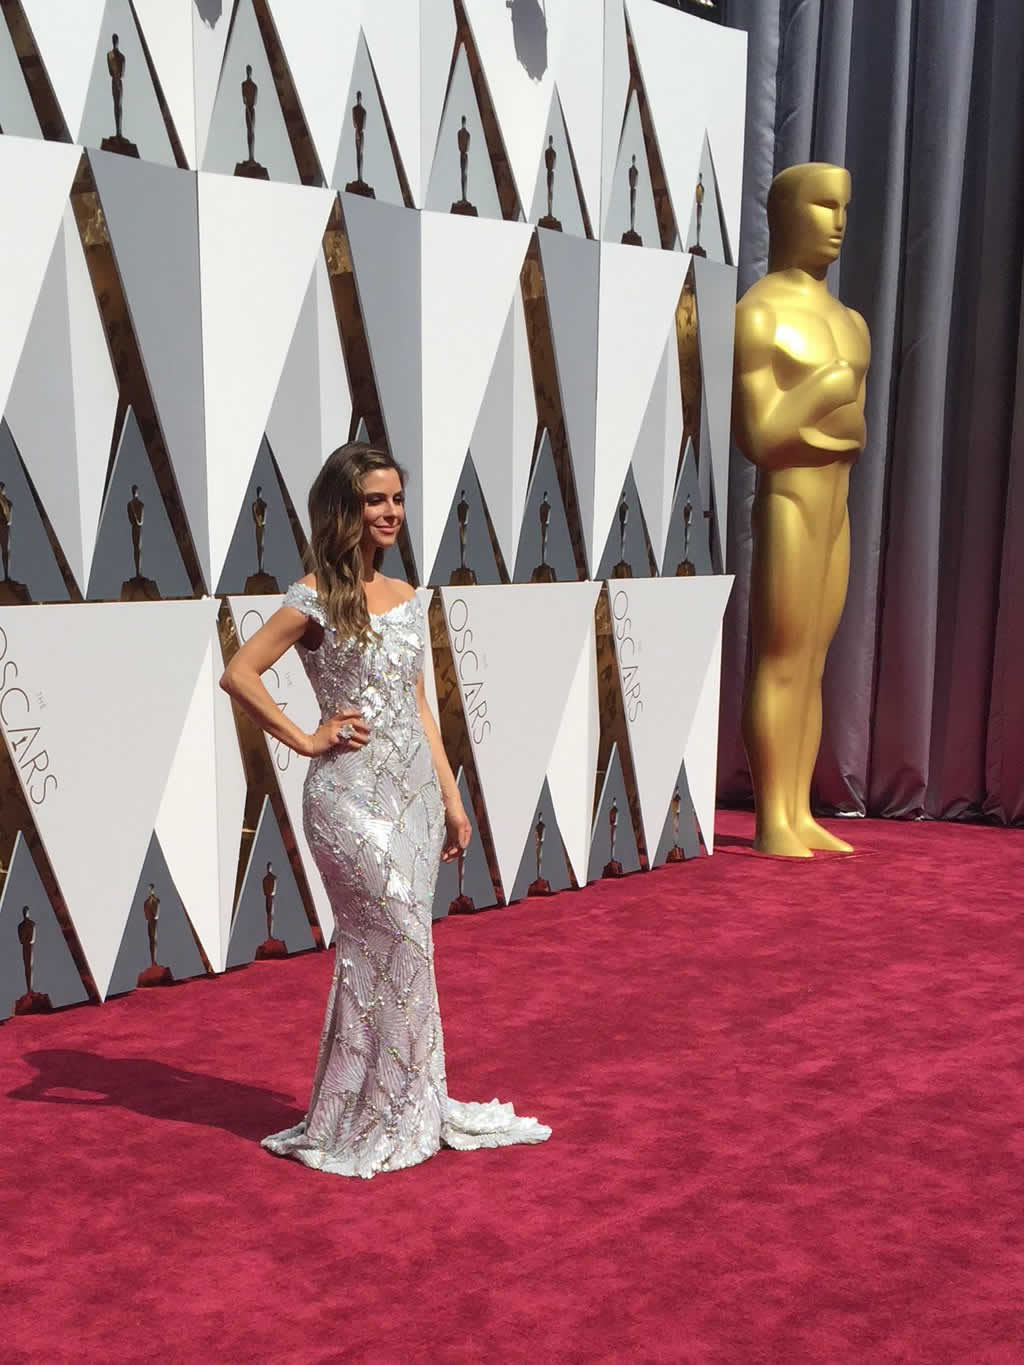 """<div class=""""meta image-caption""""><div class=""""origin-logo origin-image none""""><span>none</span></div><span class=""""caption-text"""">Photographers get their first celebrity, Maria Menounos, who arrives on the on the red carpet in Los Angeles on Sunday, February 28, 2016. (KGO-TV/Matt Keller)</span></div>"""